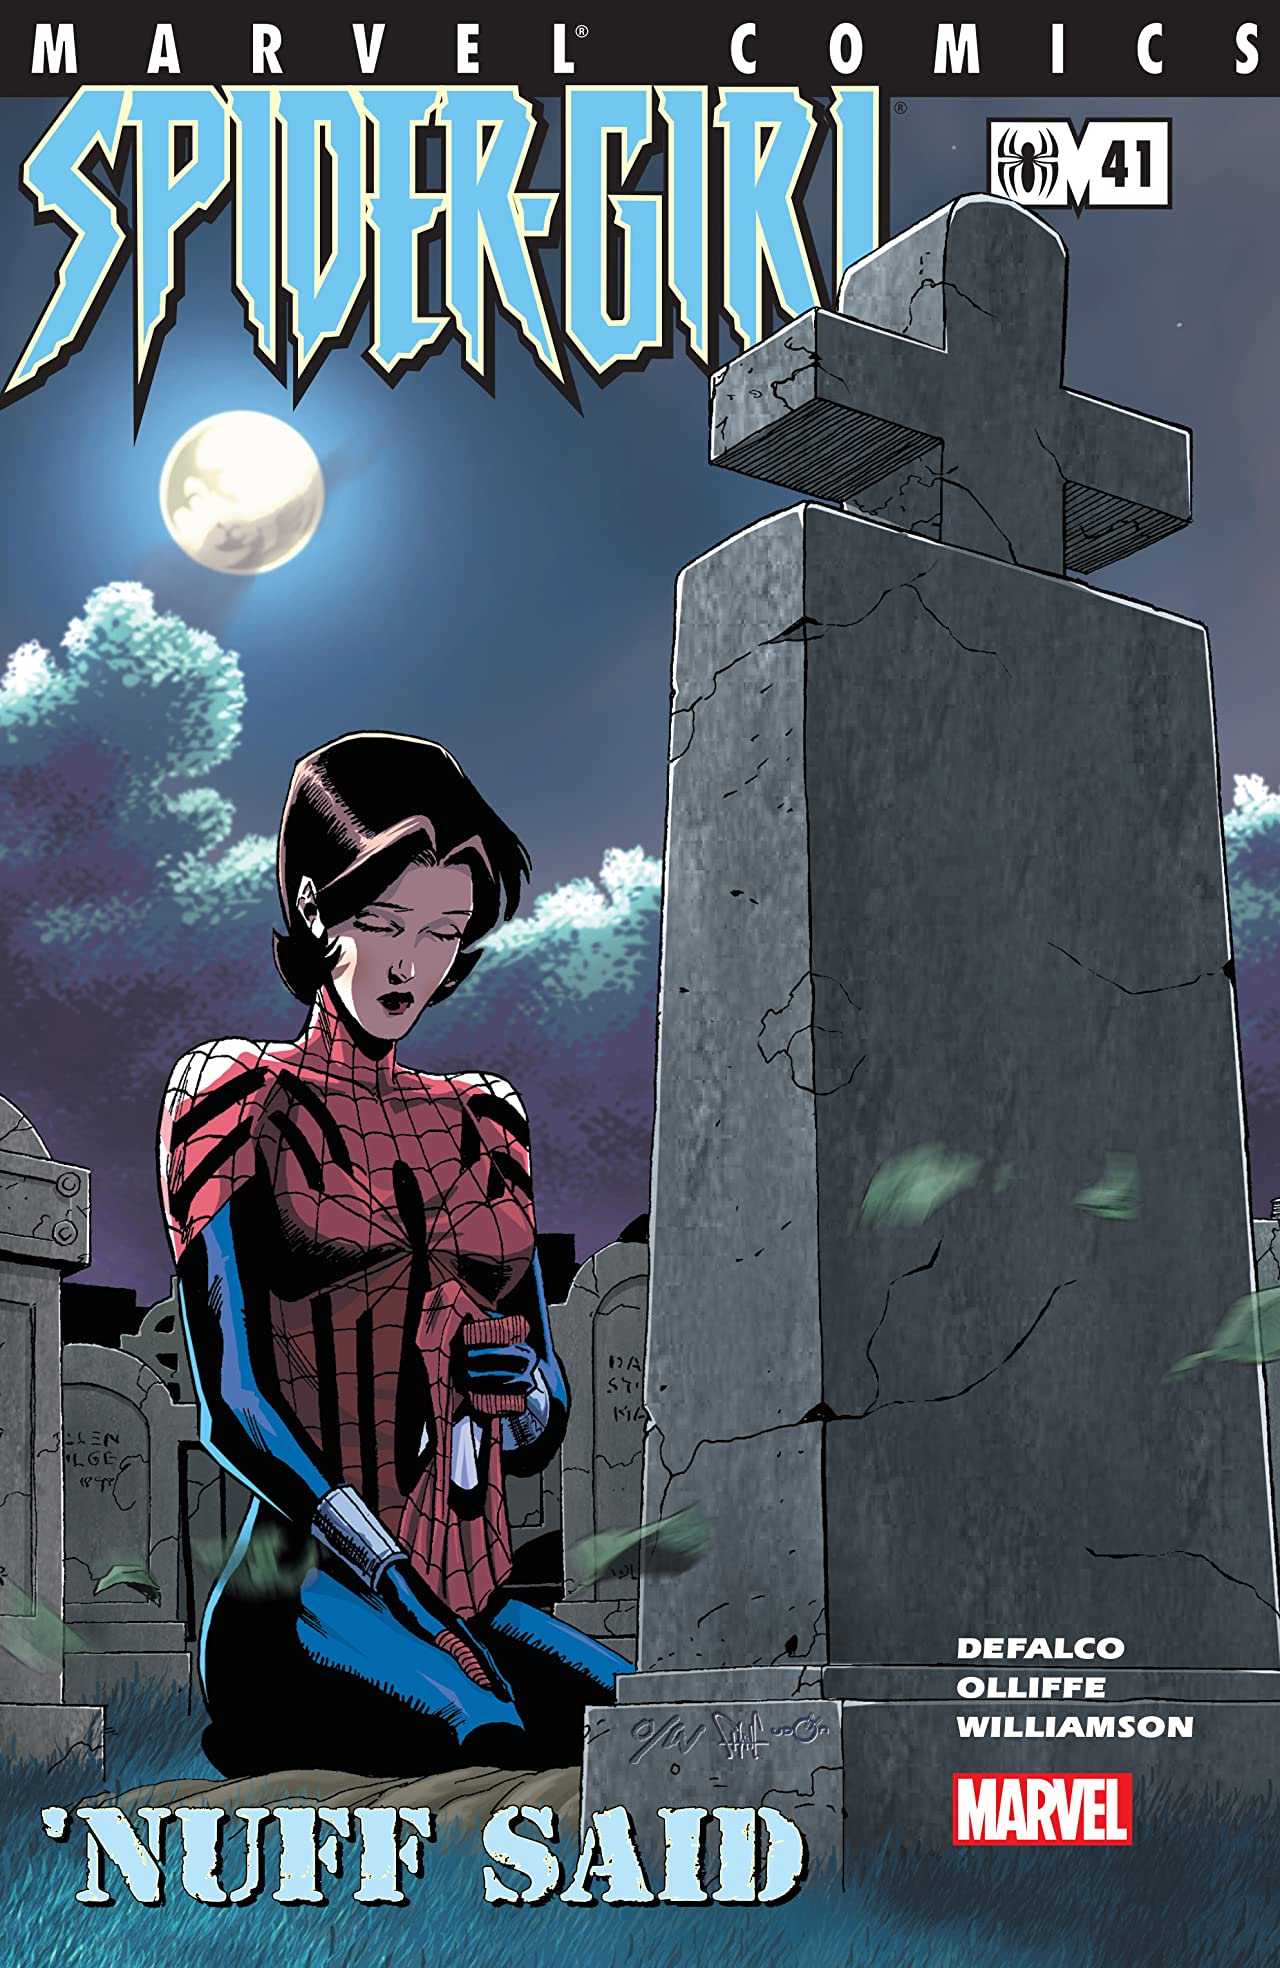 Spider-Girl Vol 1 41